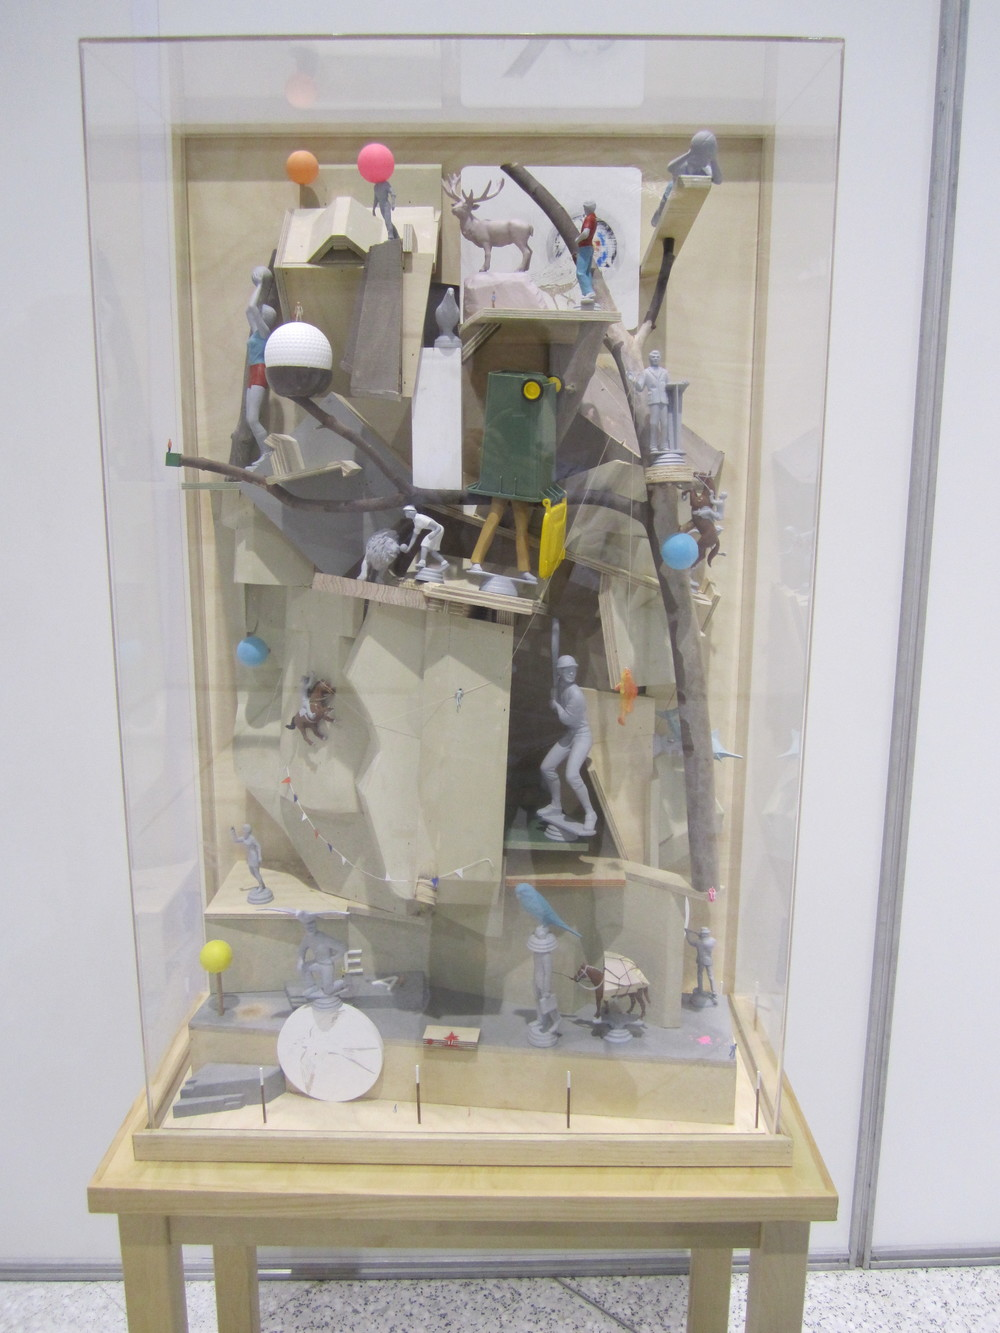 Joondalup Invitation Art Award, 2012   Precipice , 2011 Mixed media 193cm x 83cm x 44cm